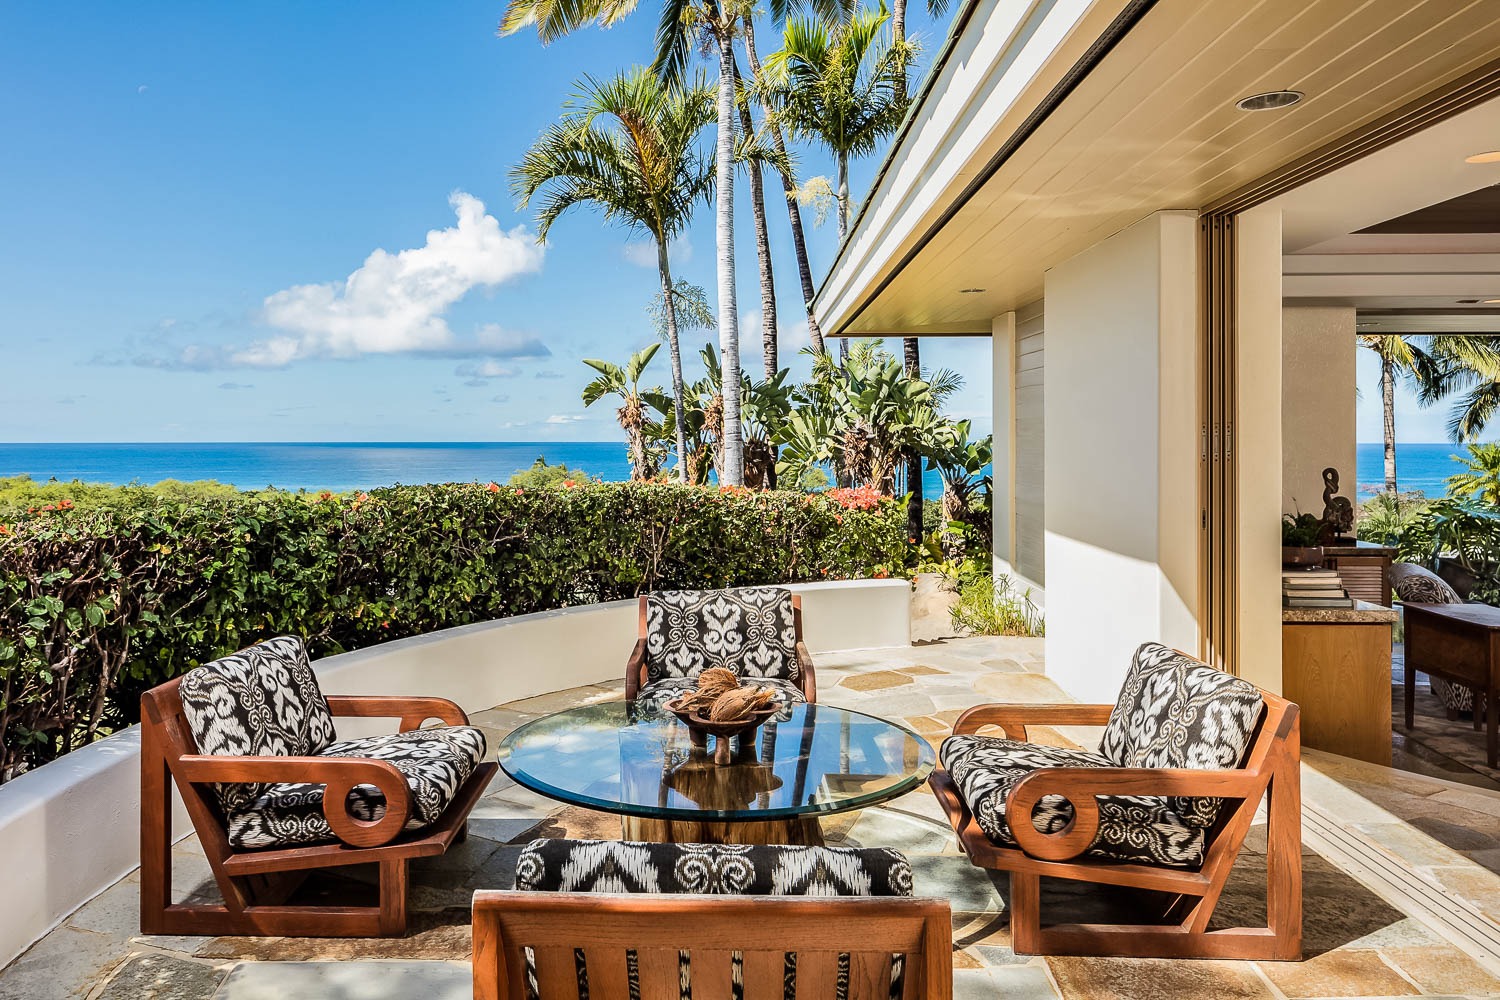 Apartment Fairway North 5 Bedroom 5 Bath Mauna Kea Resort  Big Island  Hawaii photo 20362449